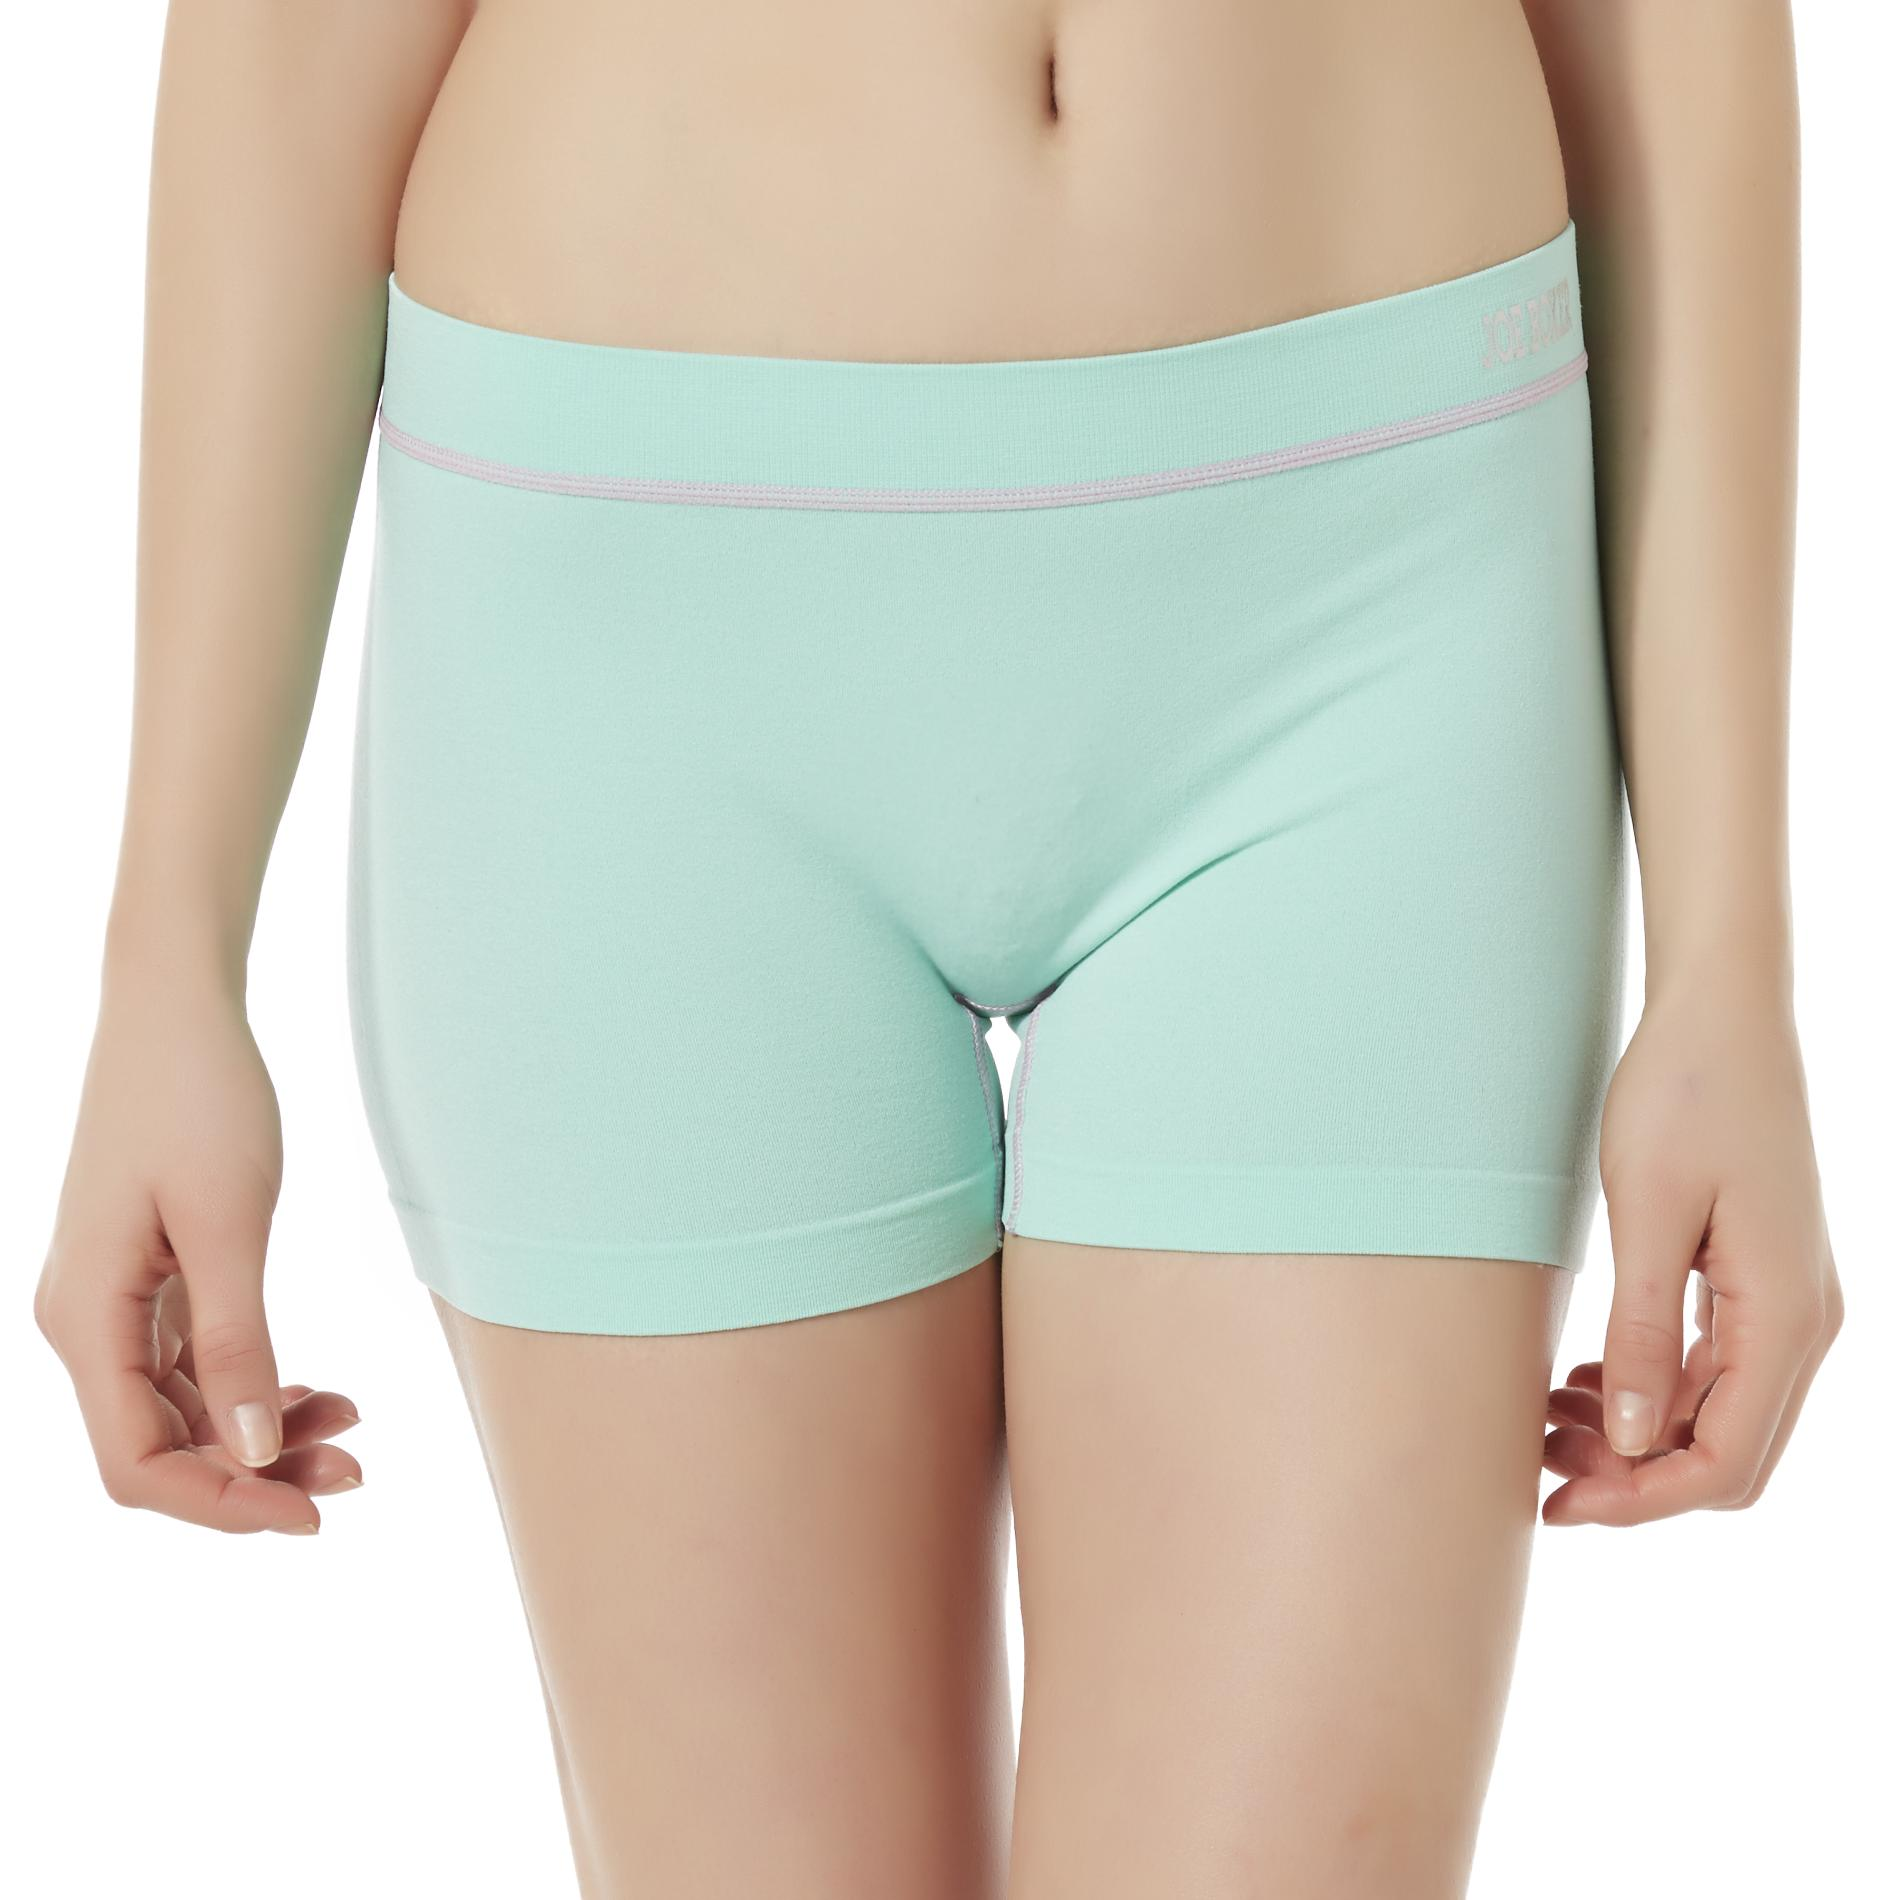 junior teen girls underwear